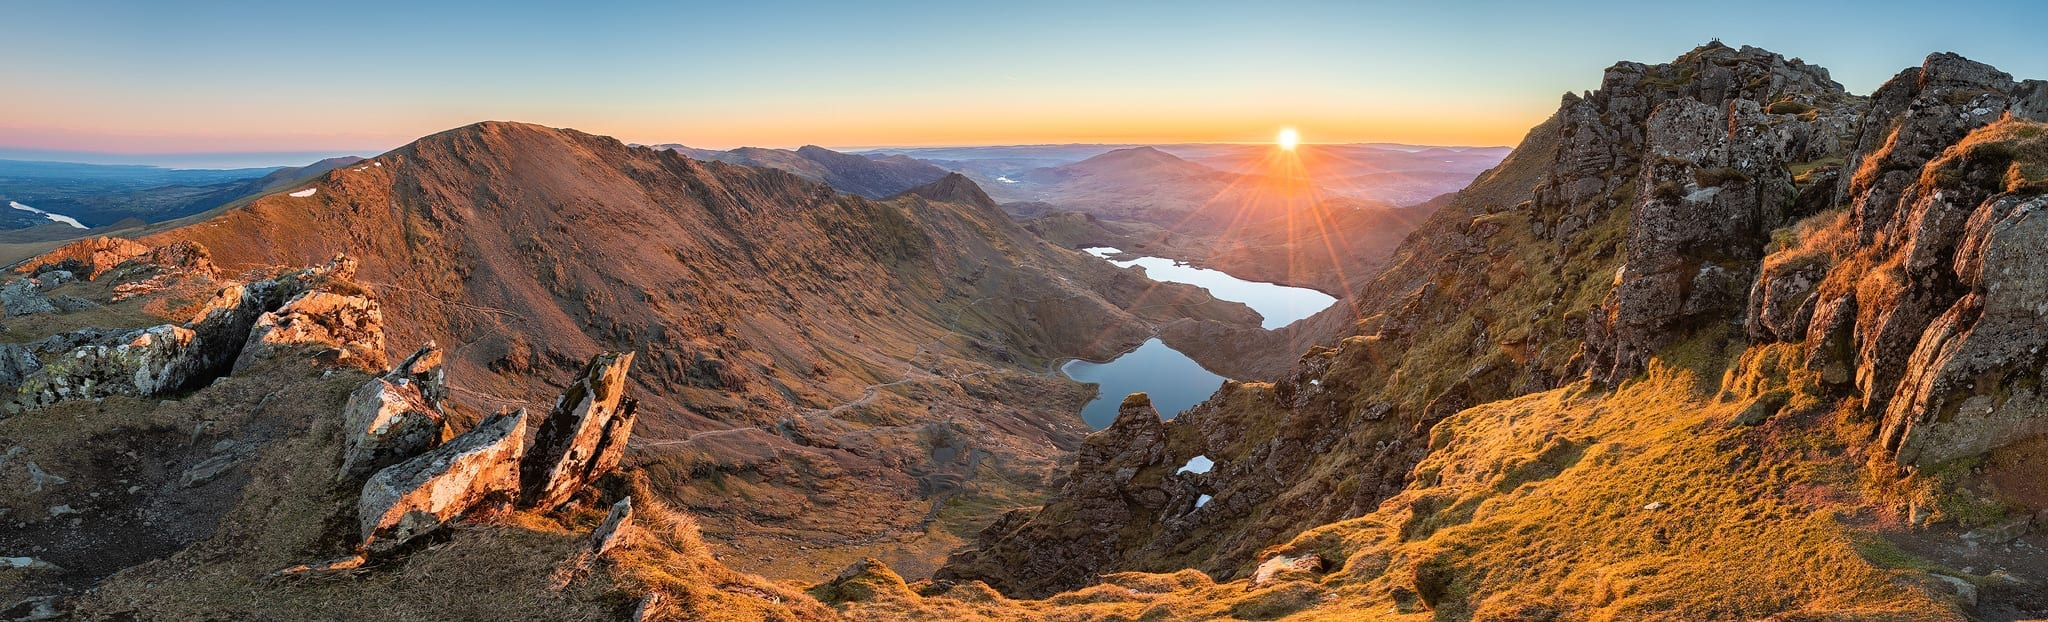 Snowdon Sunrise - Snowdonia Wild Camping Photography Workshop